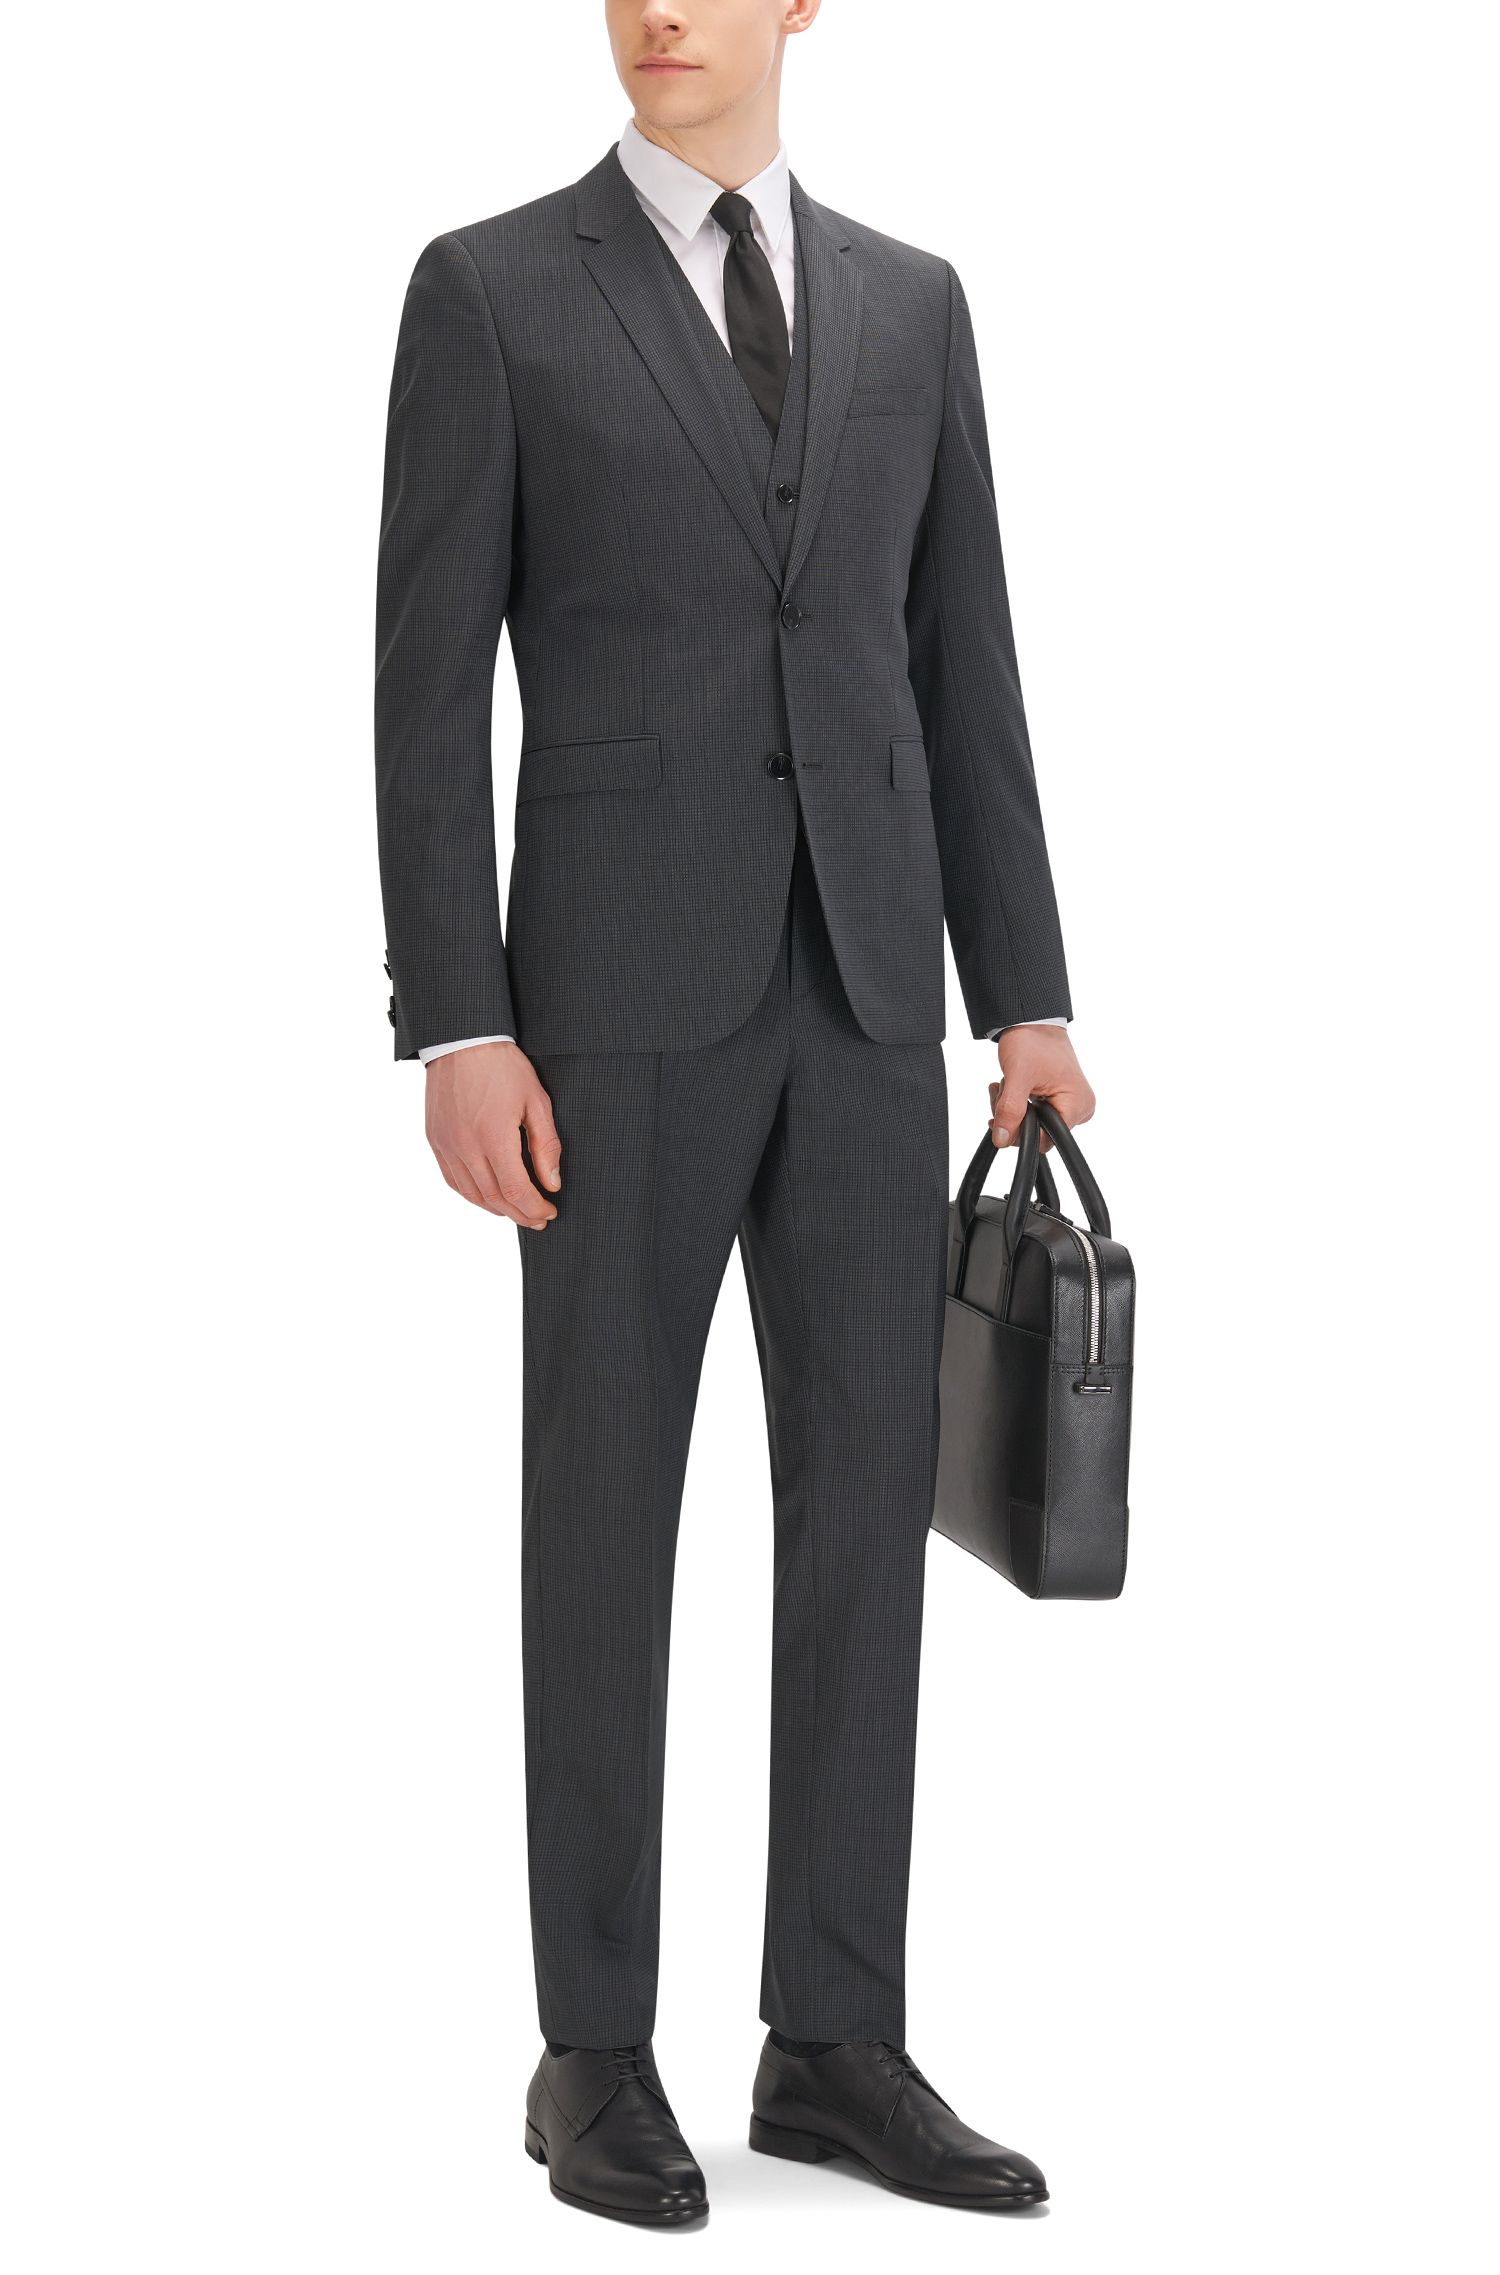 Checked Italian Super 120 Virgin Wool 3-Piece Suit, Slim Fit | Adwart/Wilard/Hets, Black